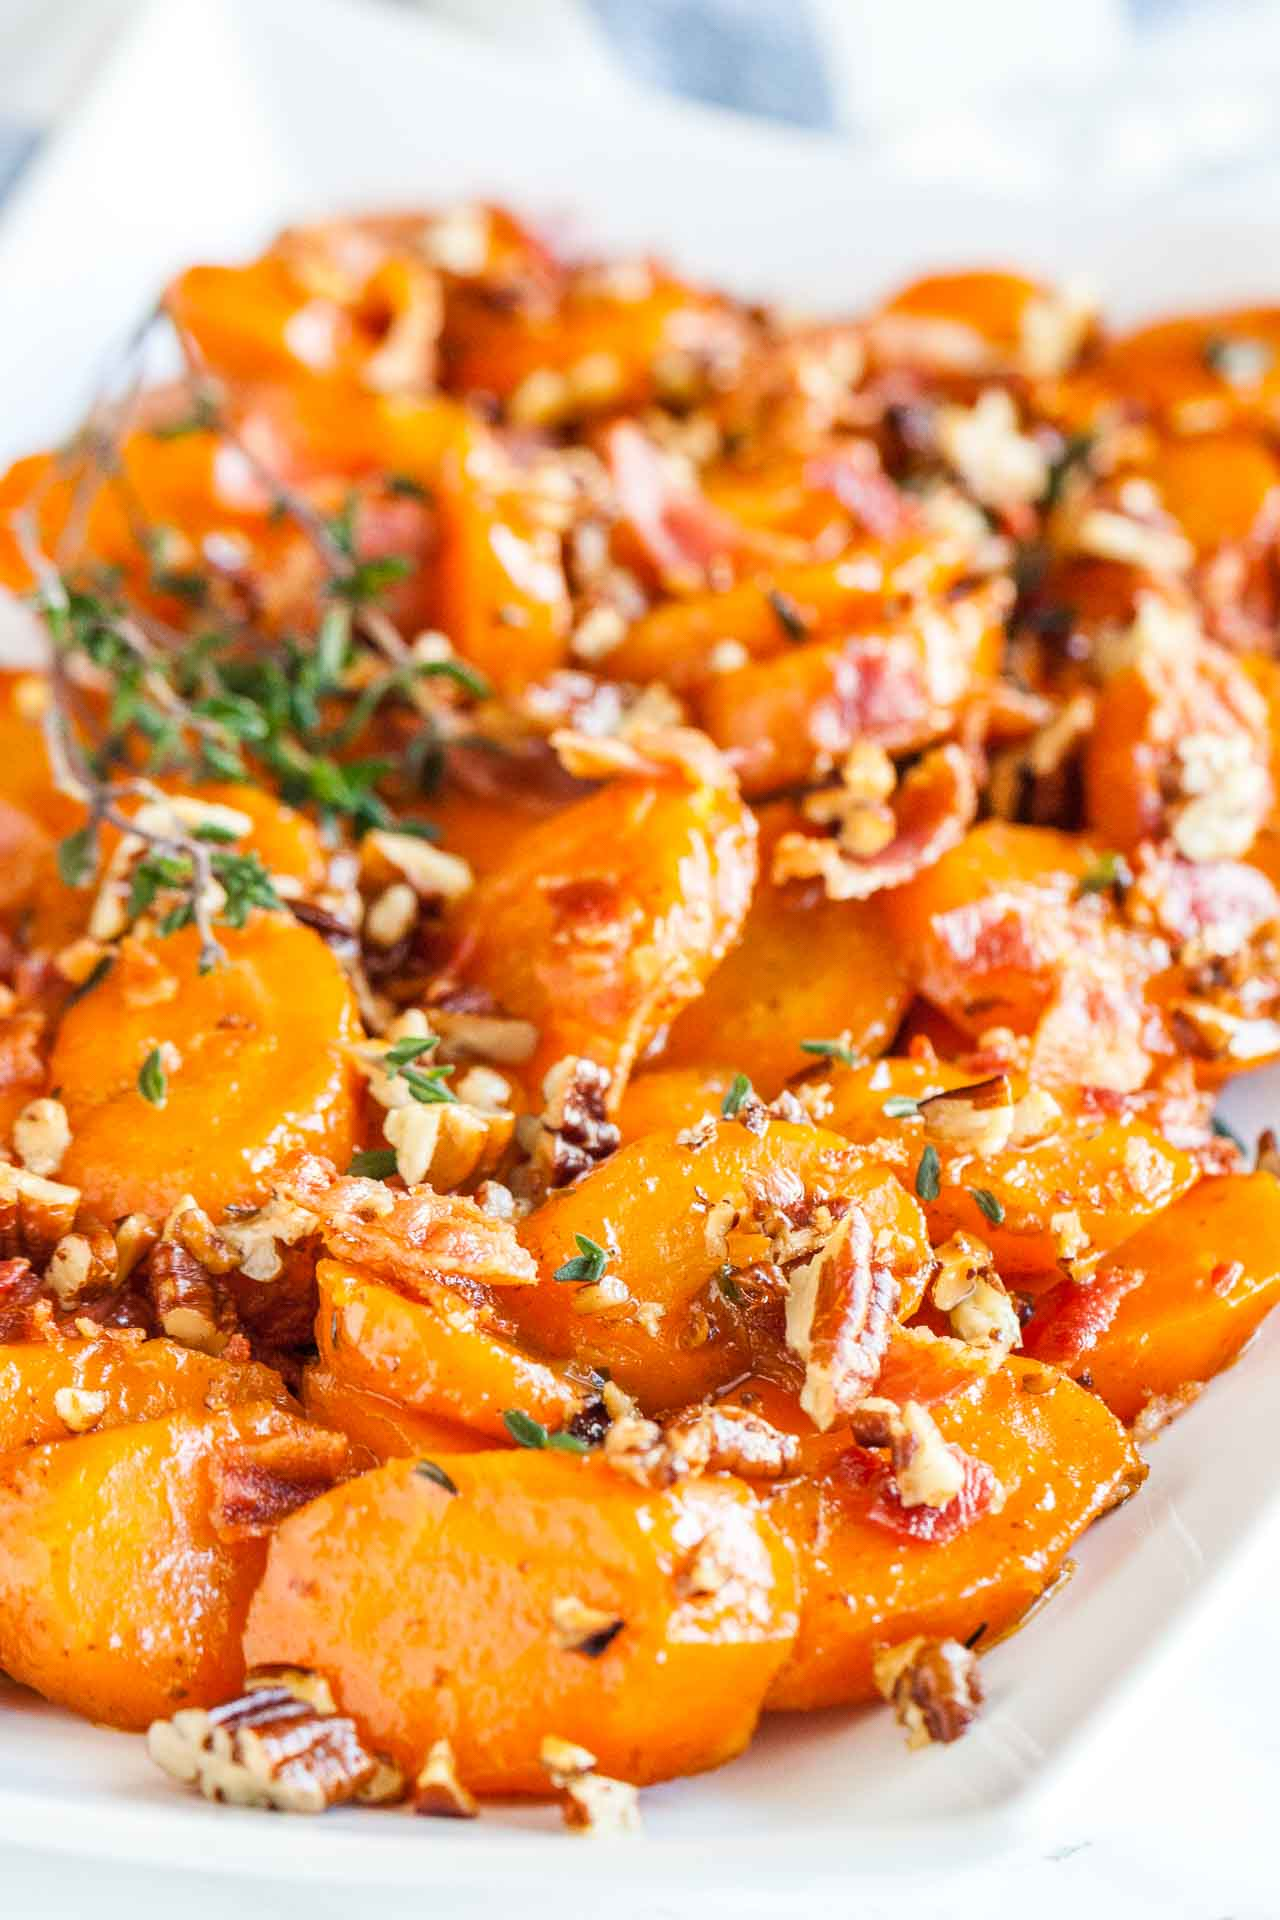 Glazed carrots - an easy vegetable side dish with bacon and pecans